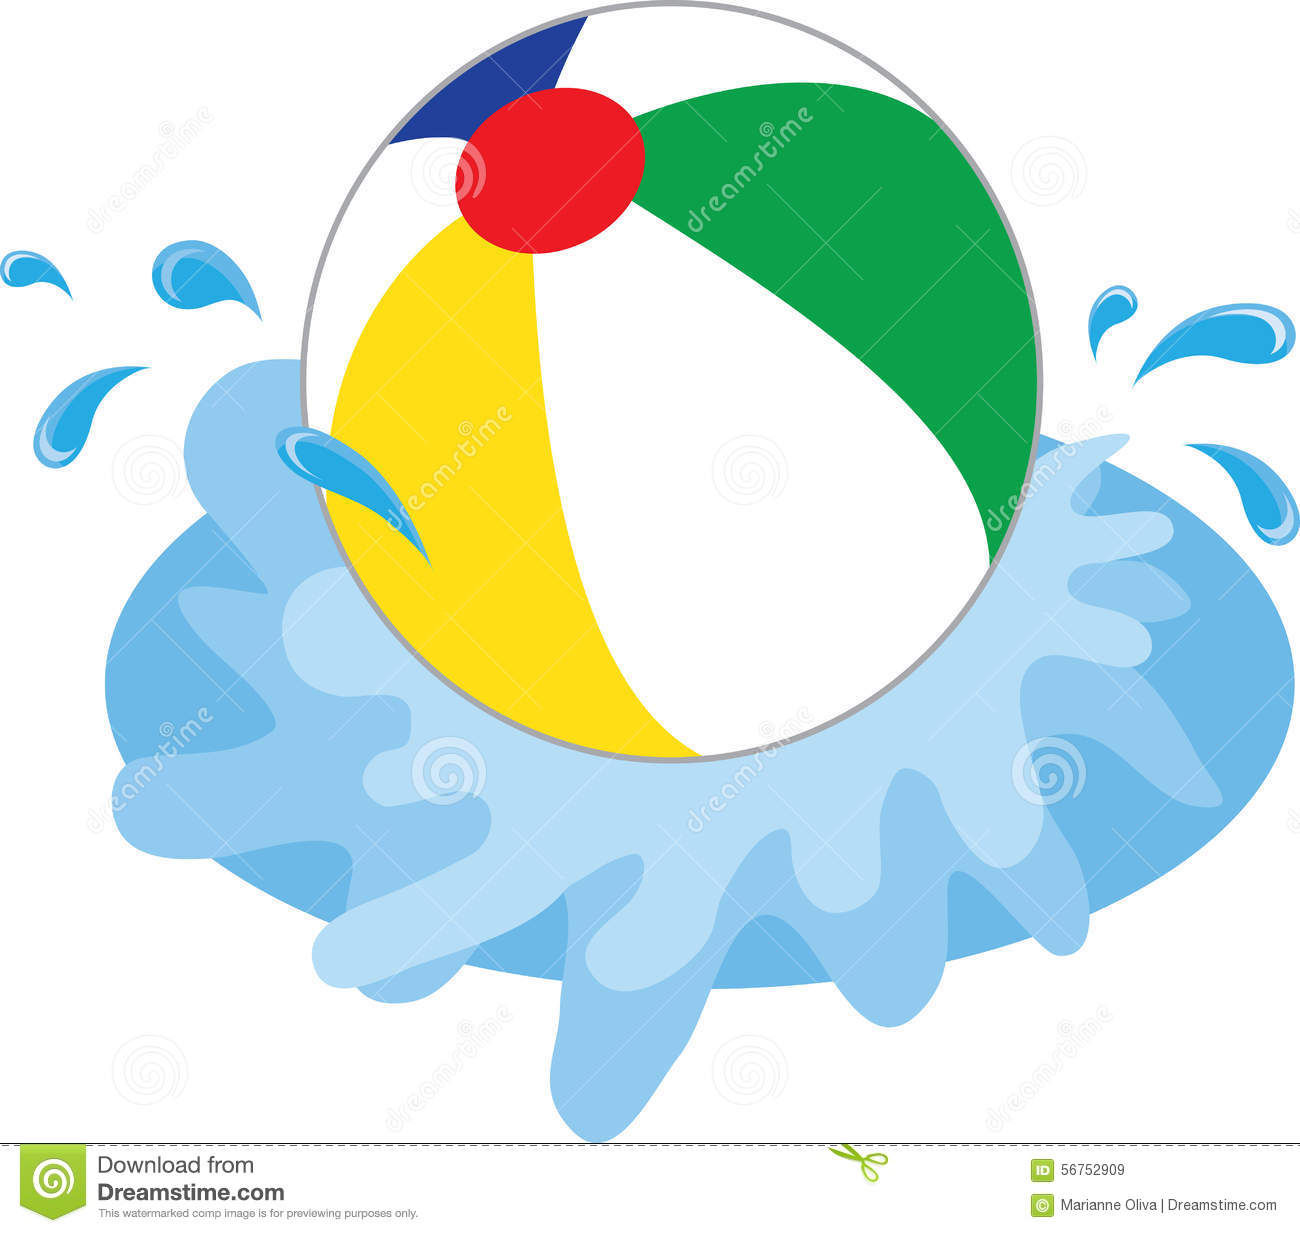 Beach pictures free download. Beachball clipart big ball